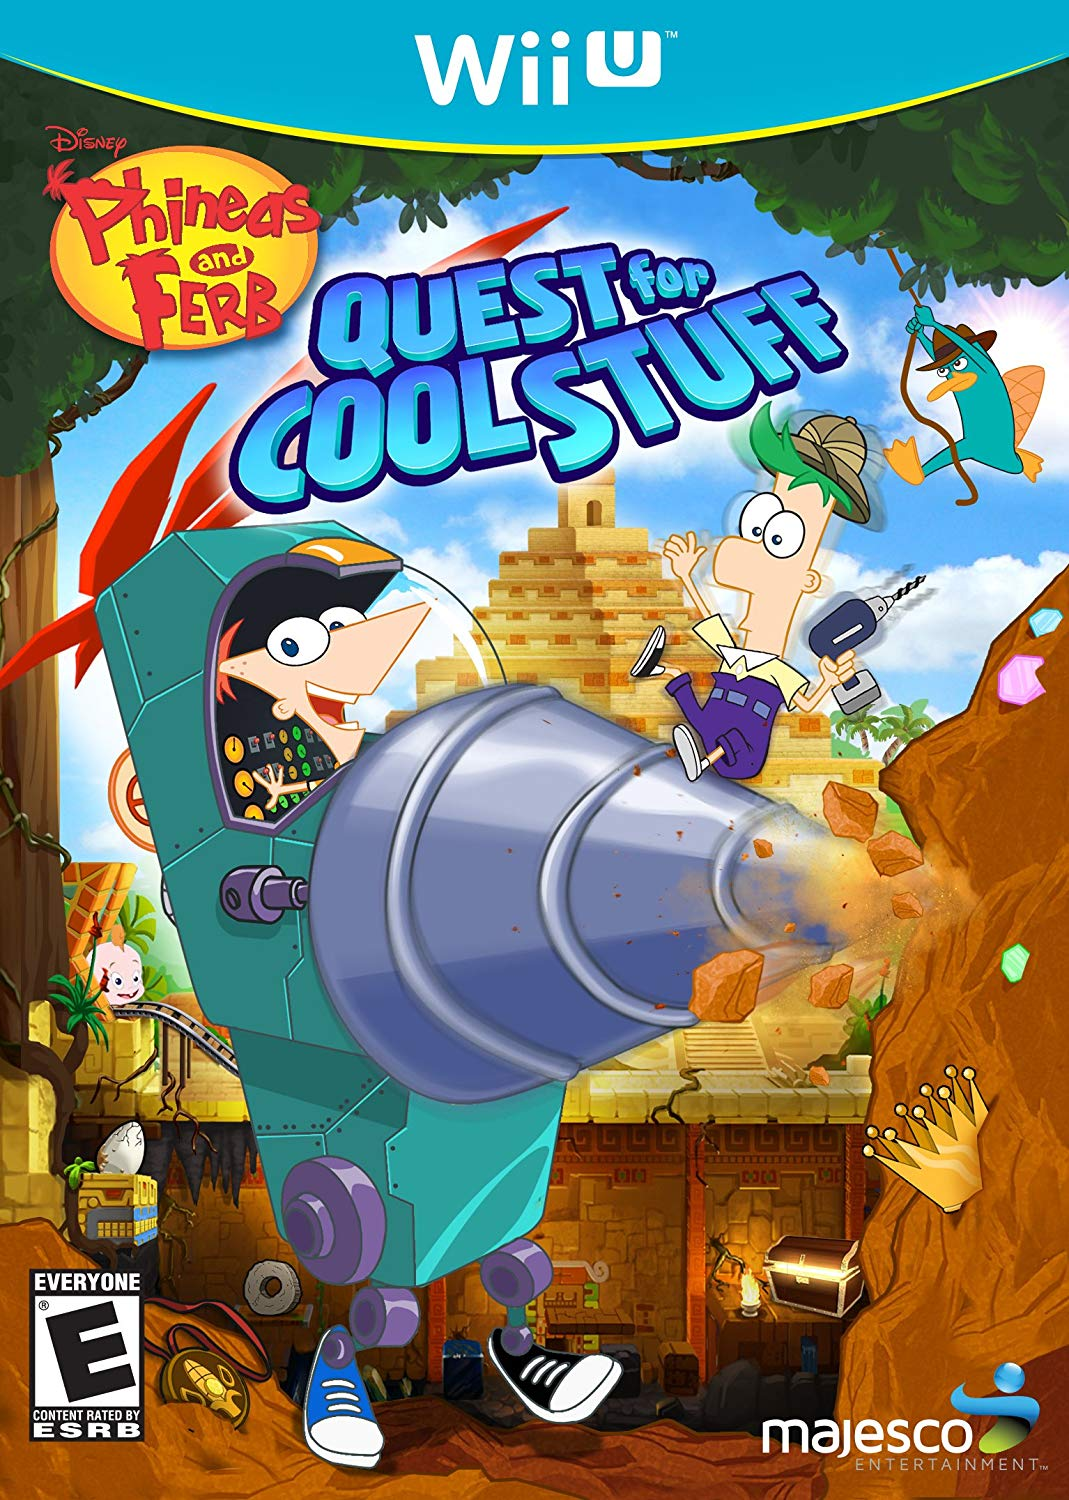 Phineas and Ferb Quest for Cool Stuff